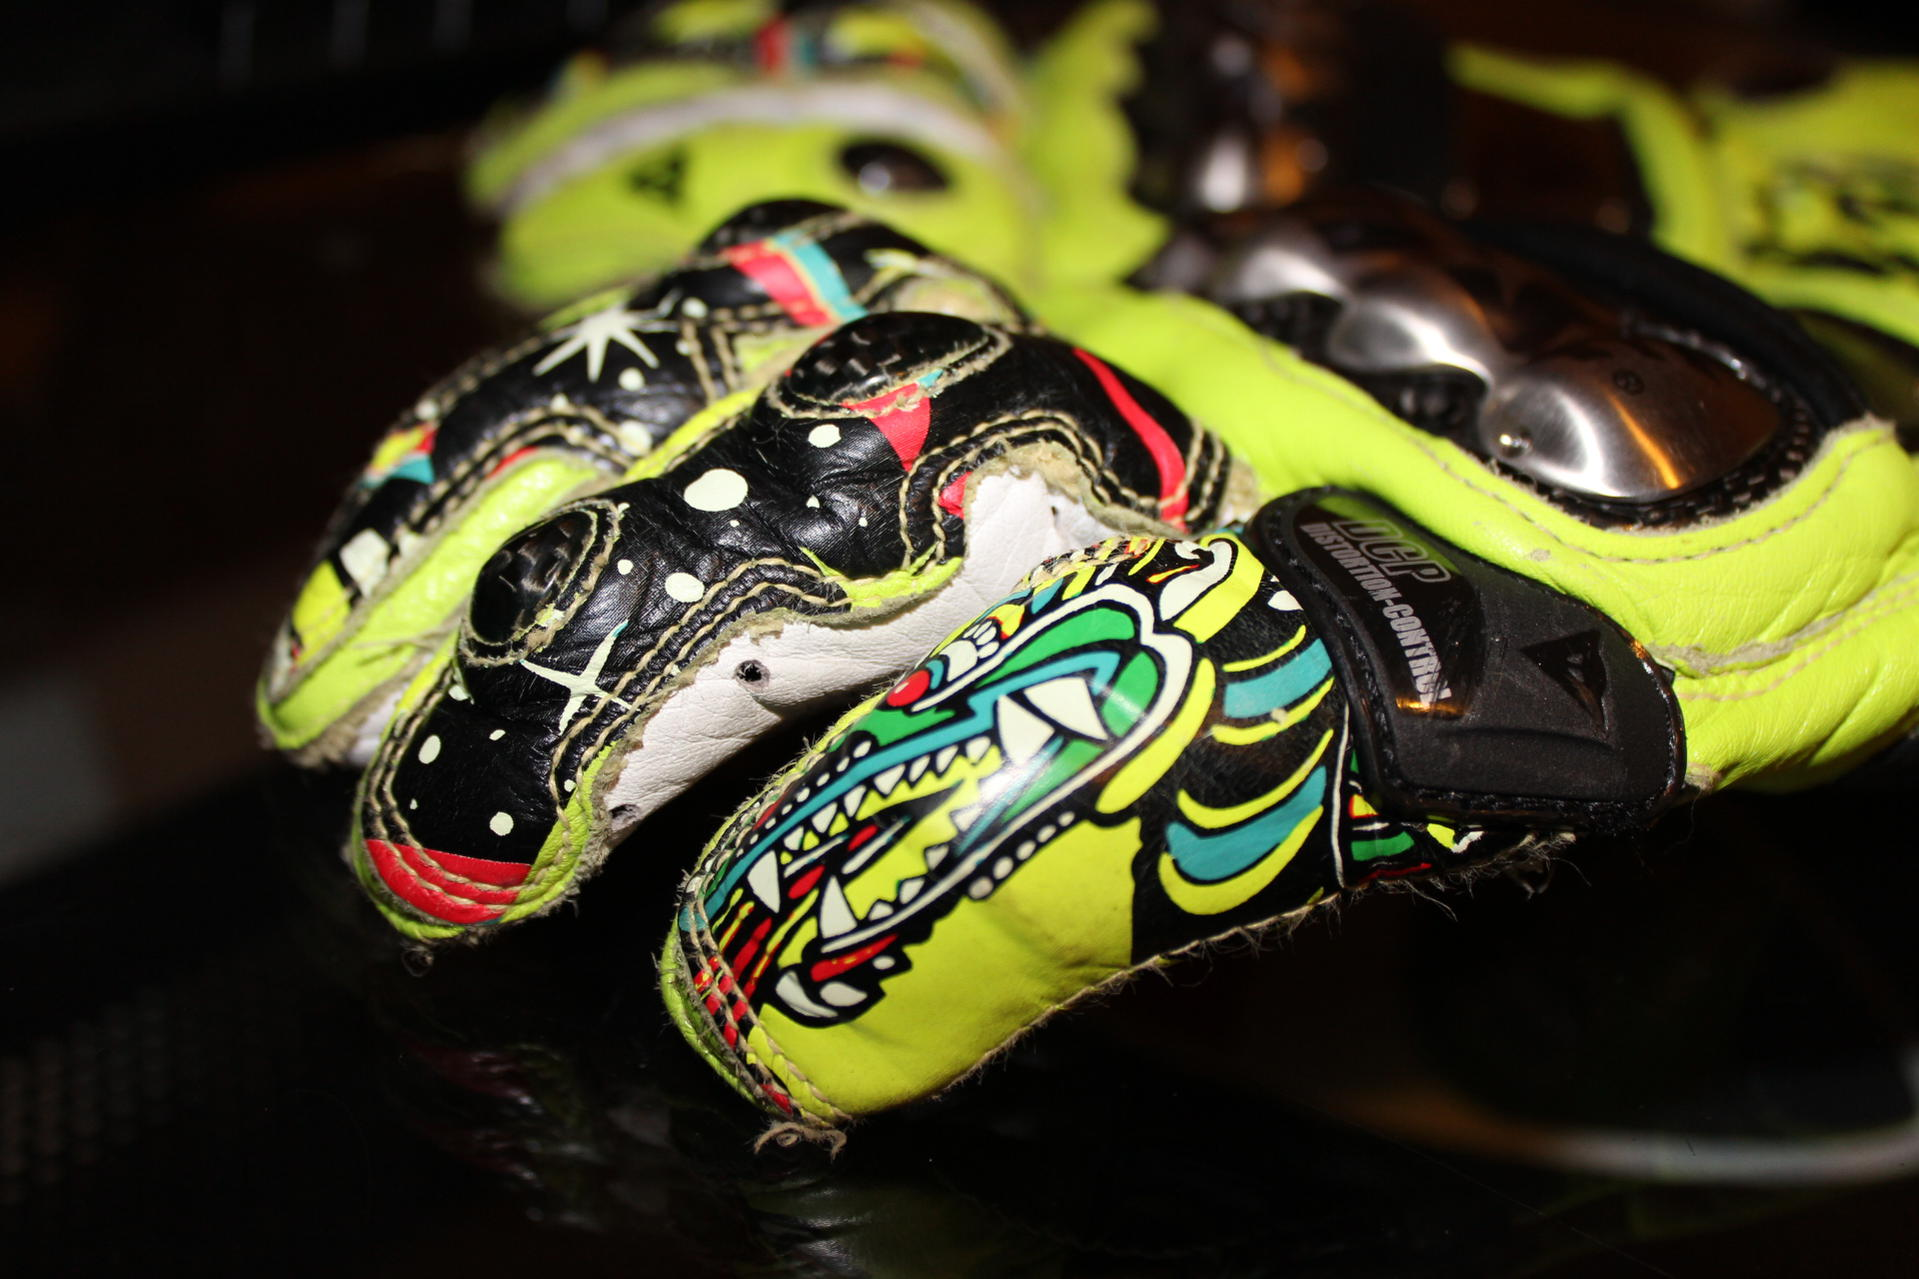 valentino rossi gloves Photo